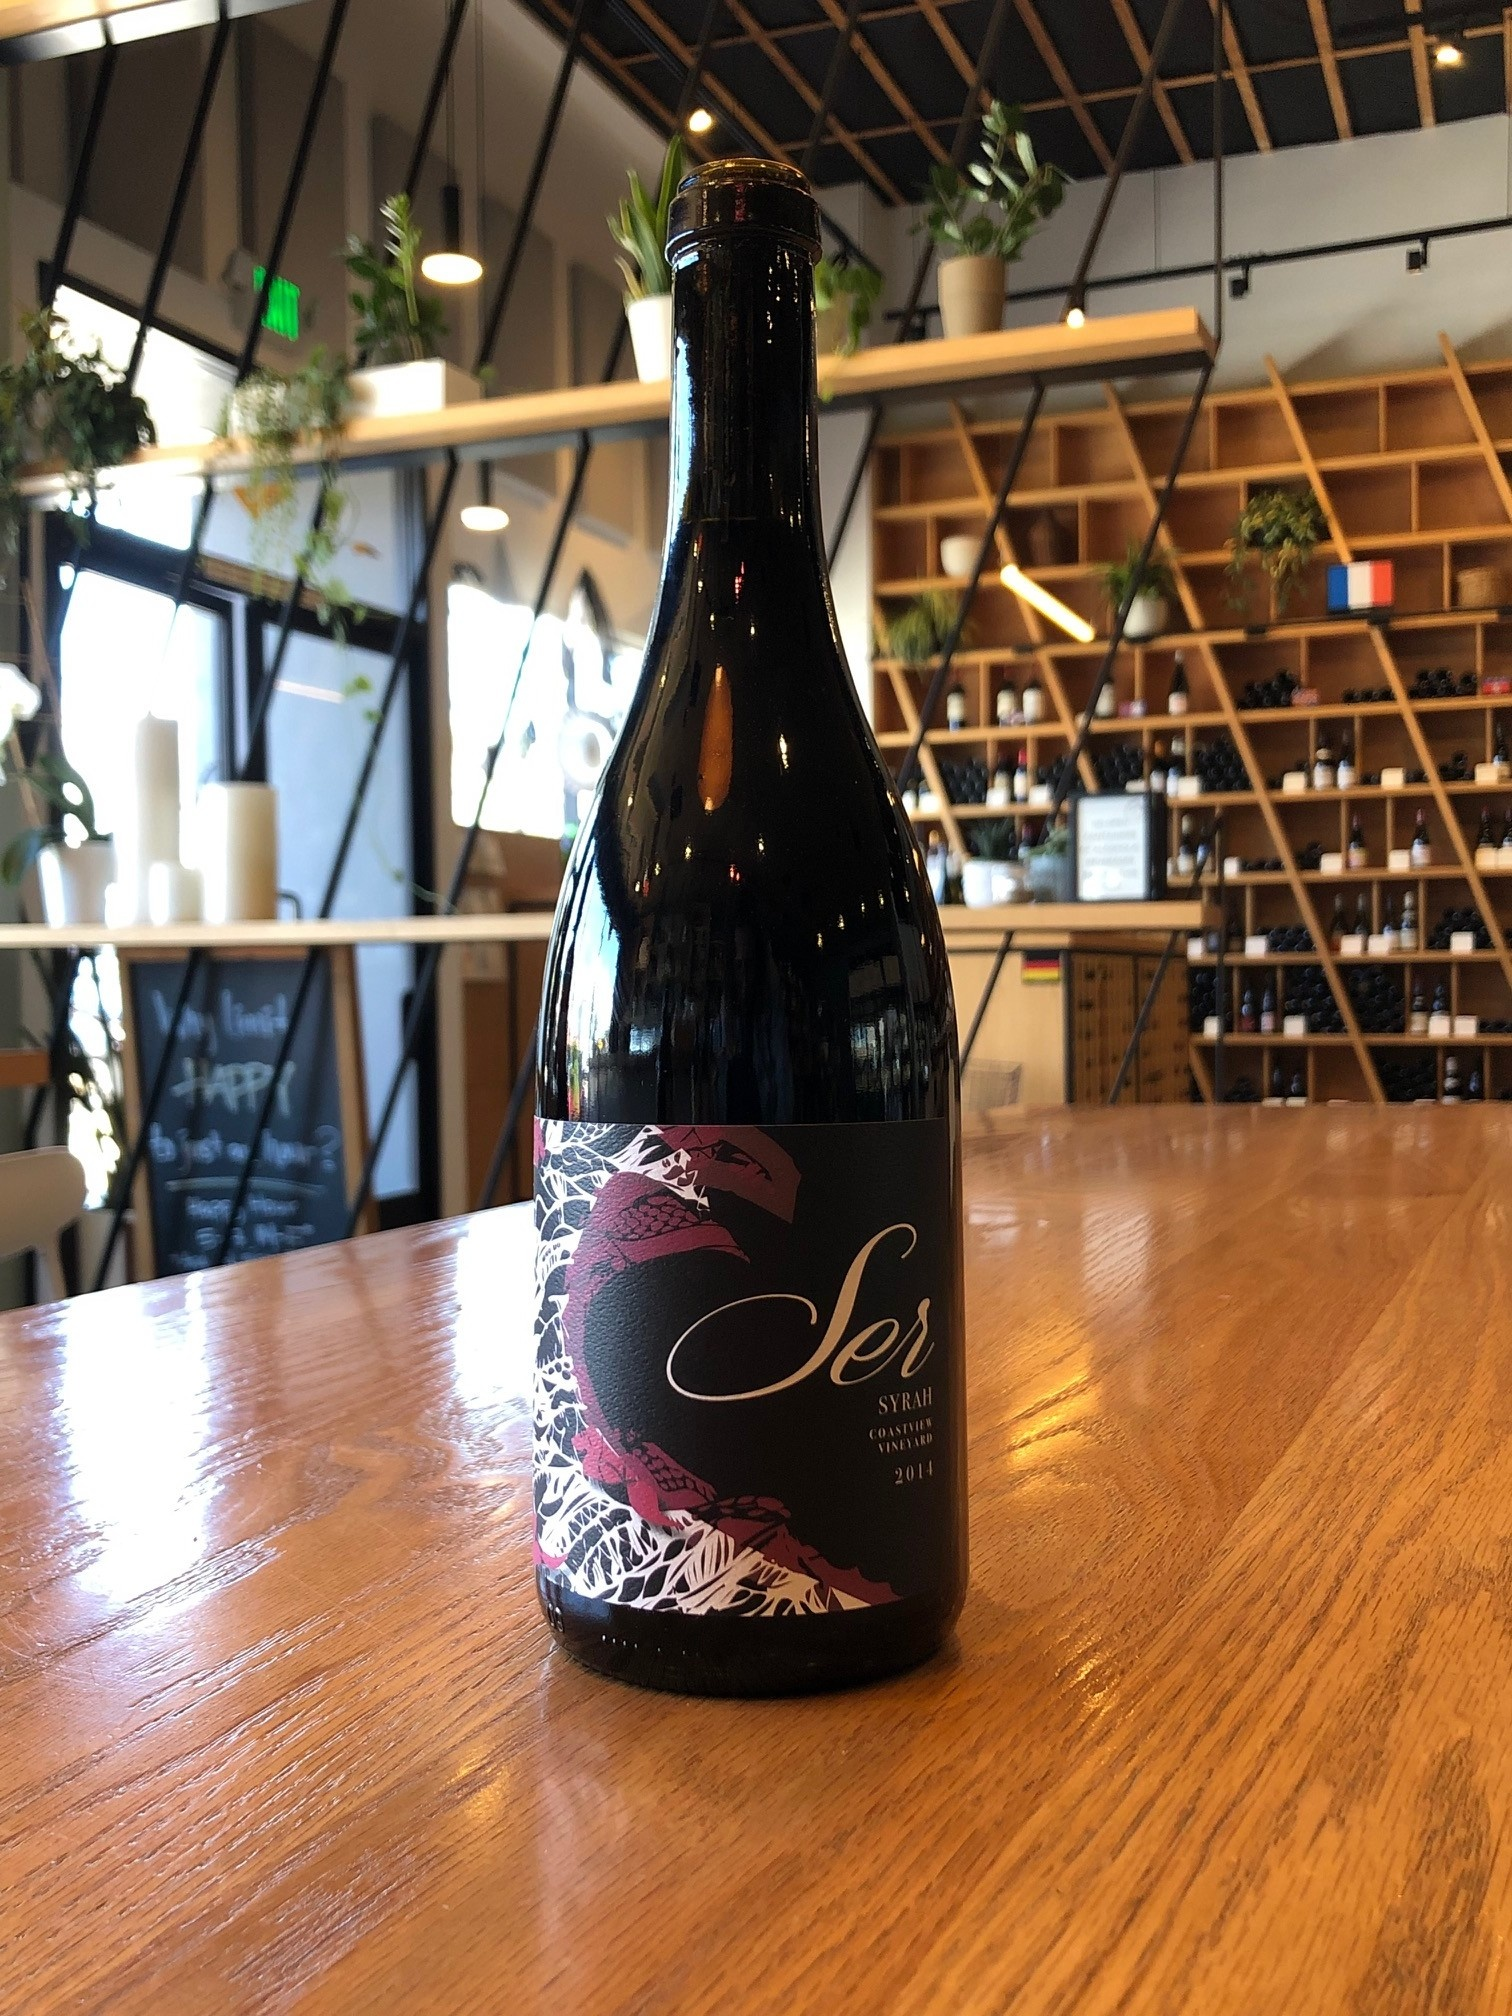 Ser 2014 Ser Coastview Vineyard Syrah 750ml